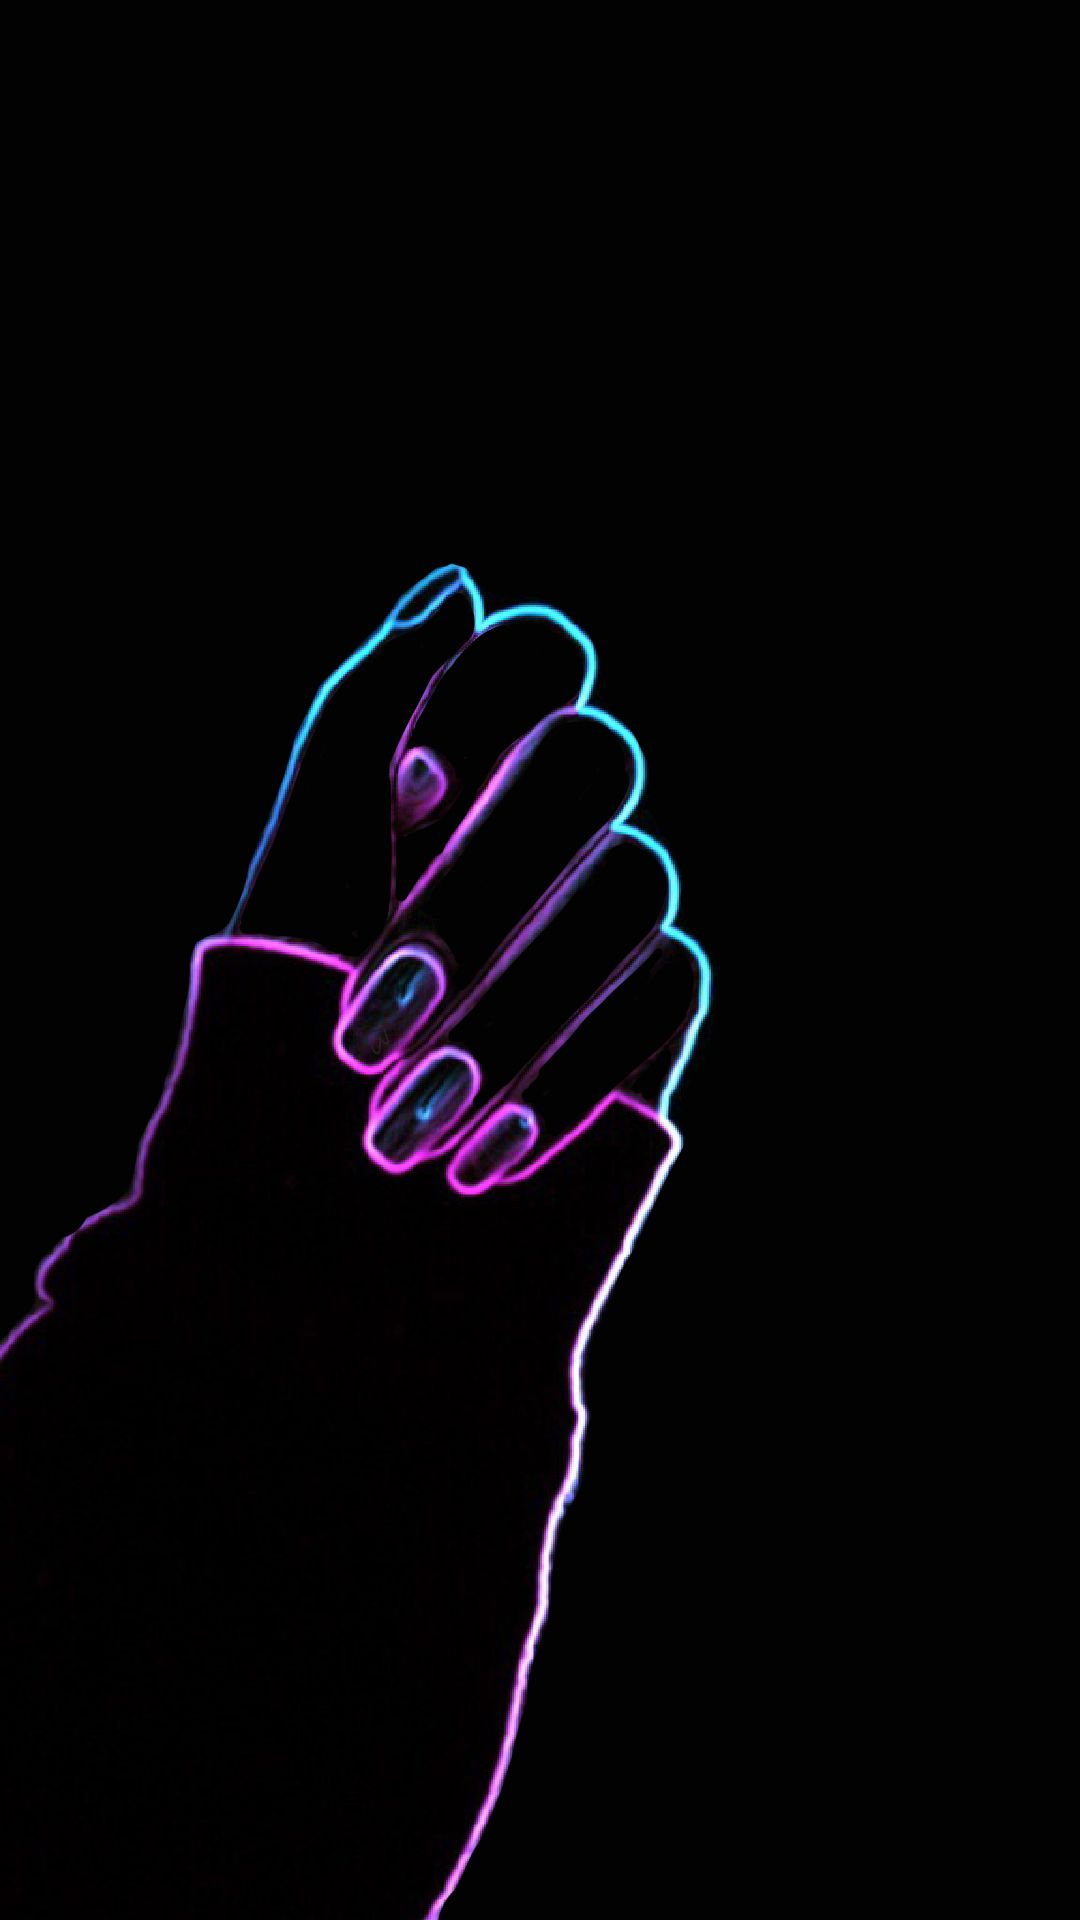 Neon Nails Wallpaper neon pink blue colourful black wallpaper